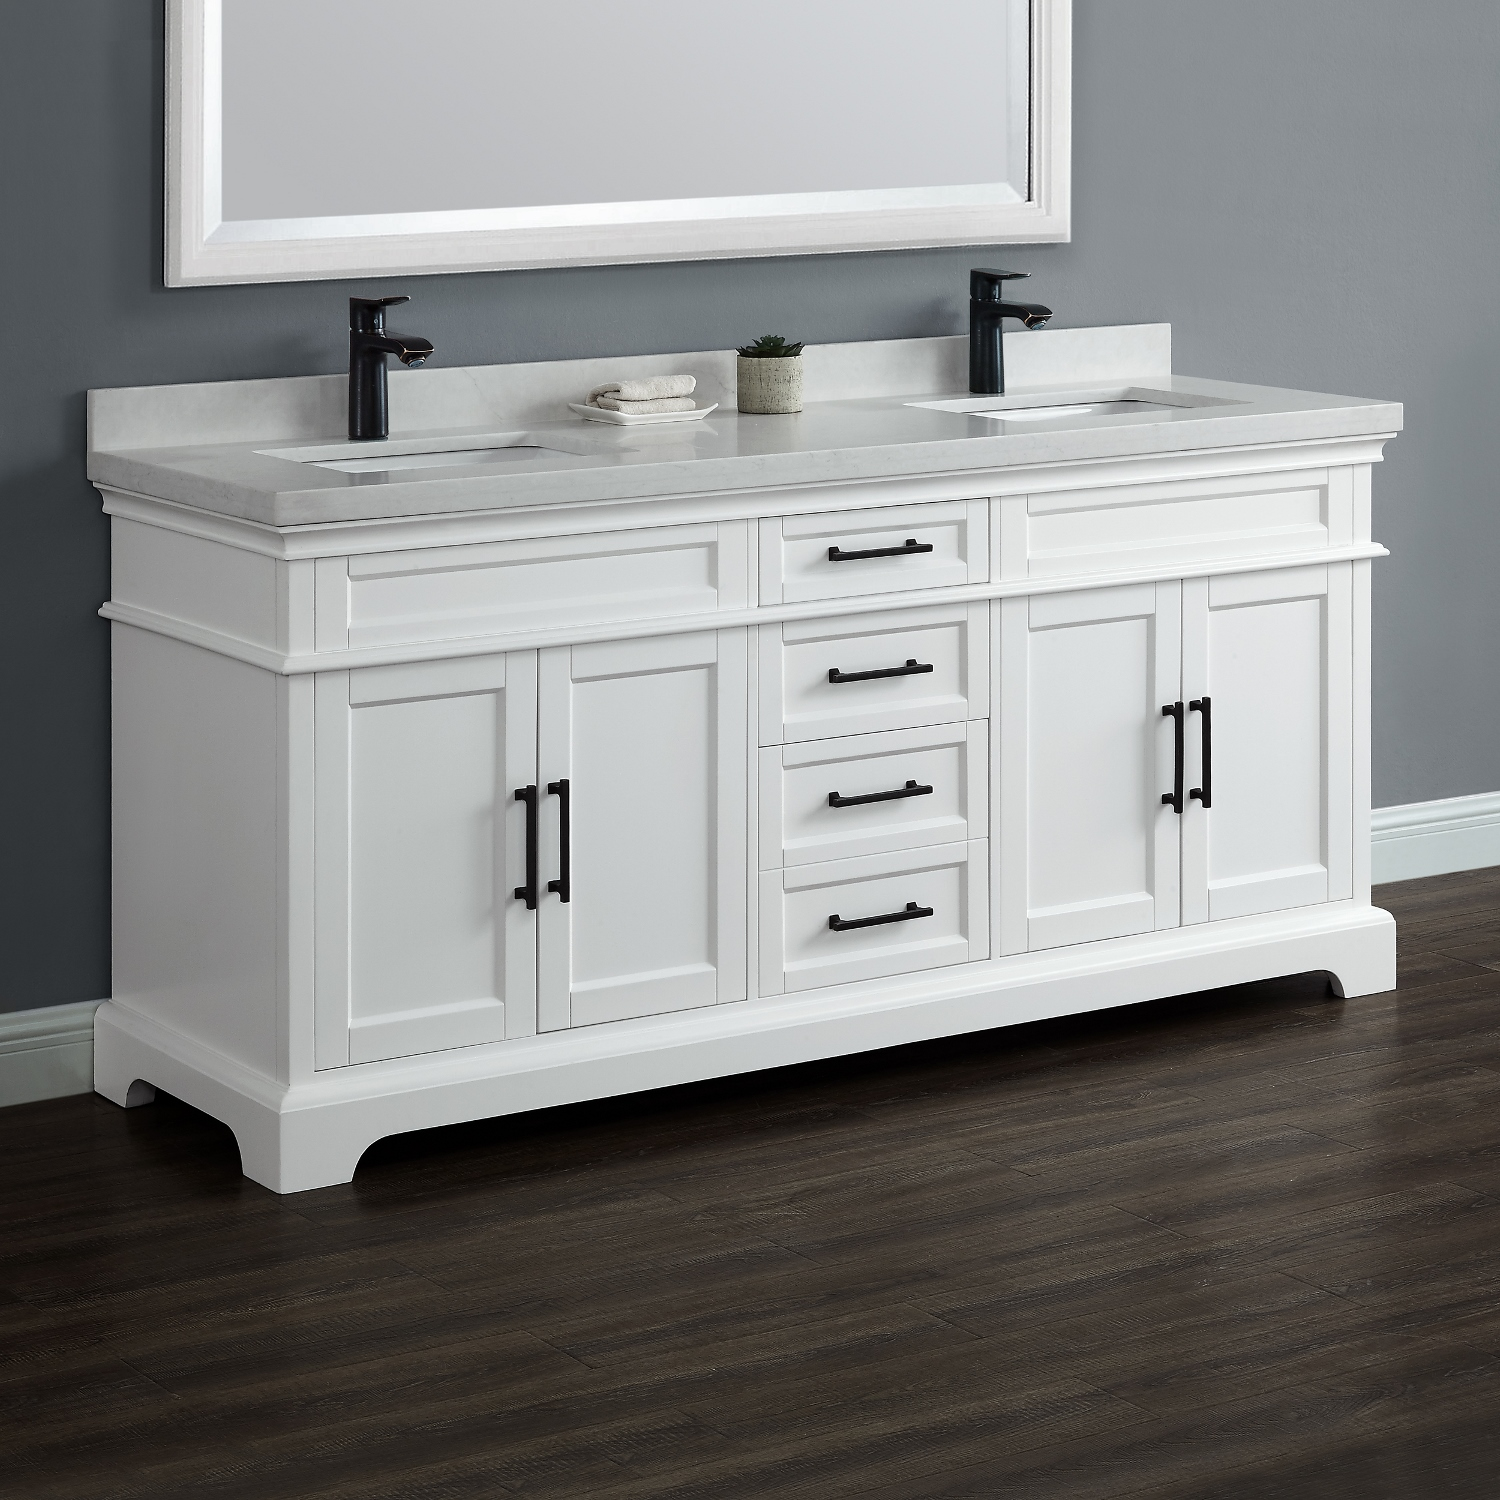 Picture of: 72 Double Sink Vanity Style